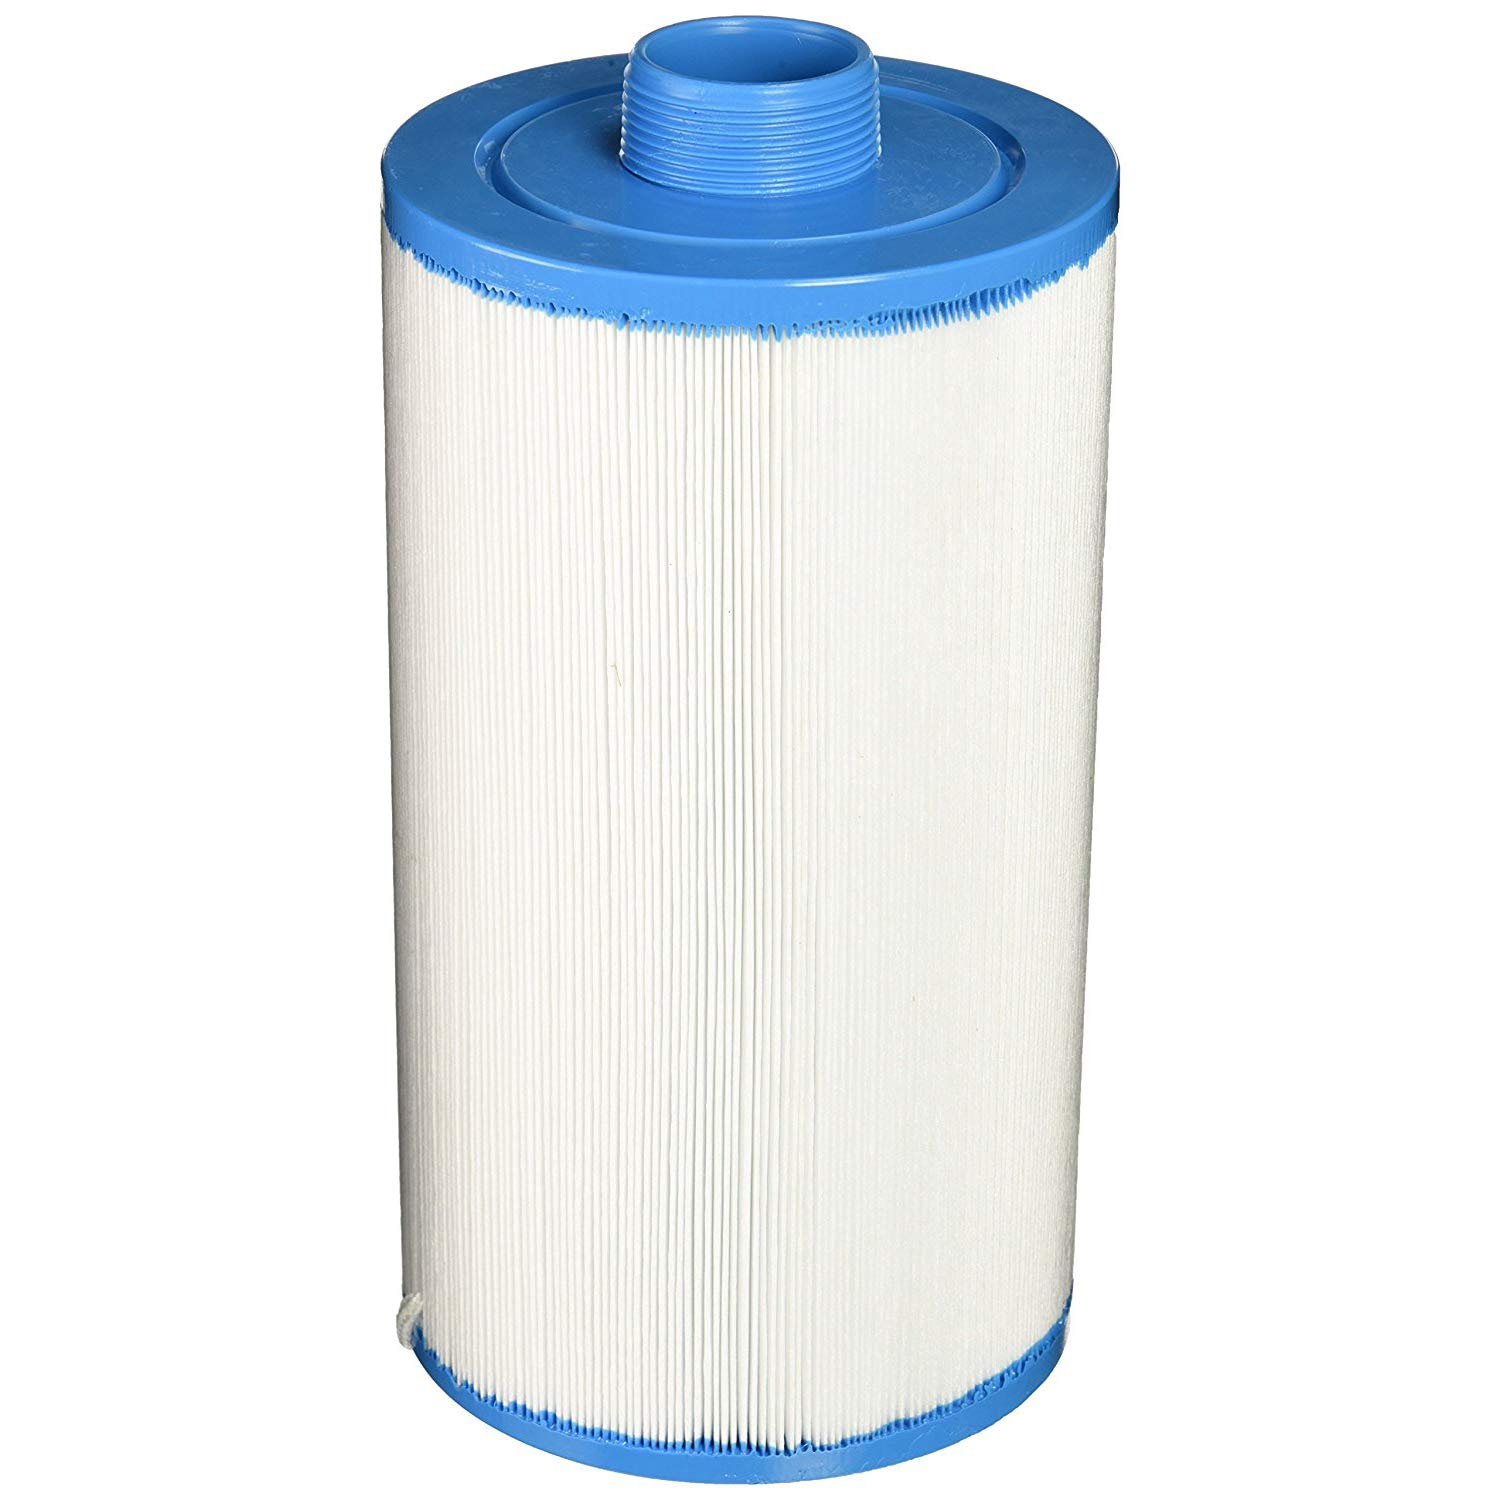 Smart Spa HSAK-4031-2 2 Pack-Hot Springs Freeflow Spa Replacement Filter-303279 White and Blue